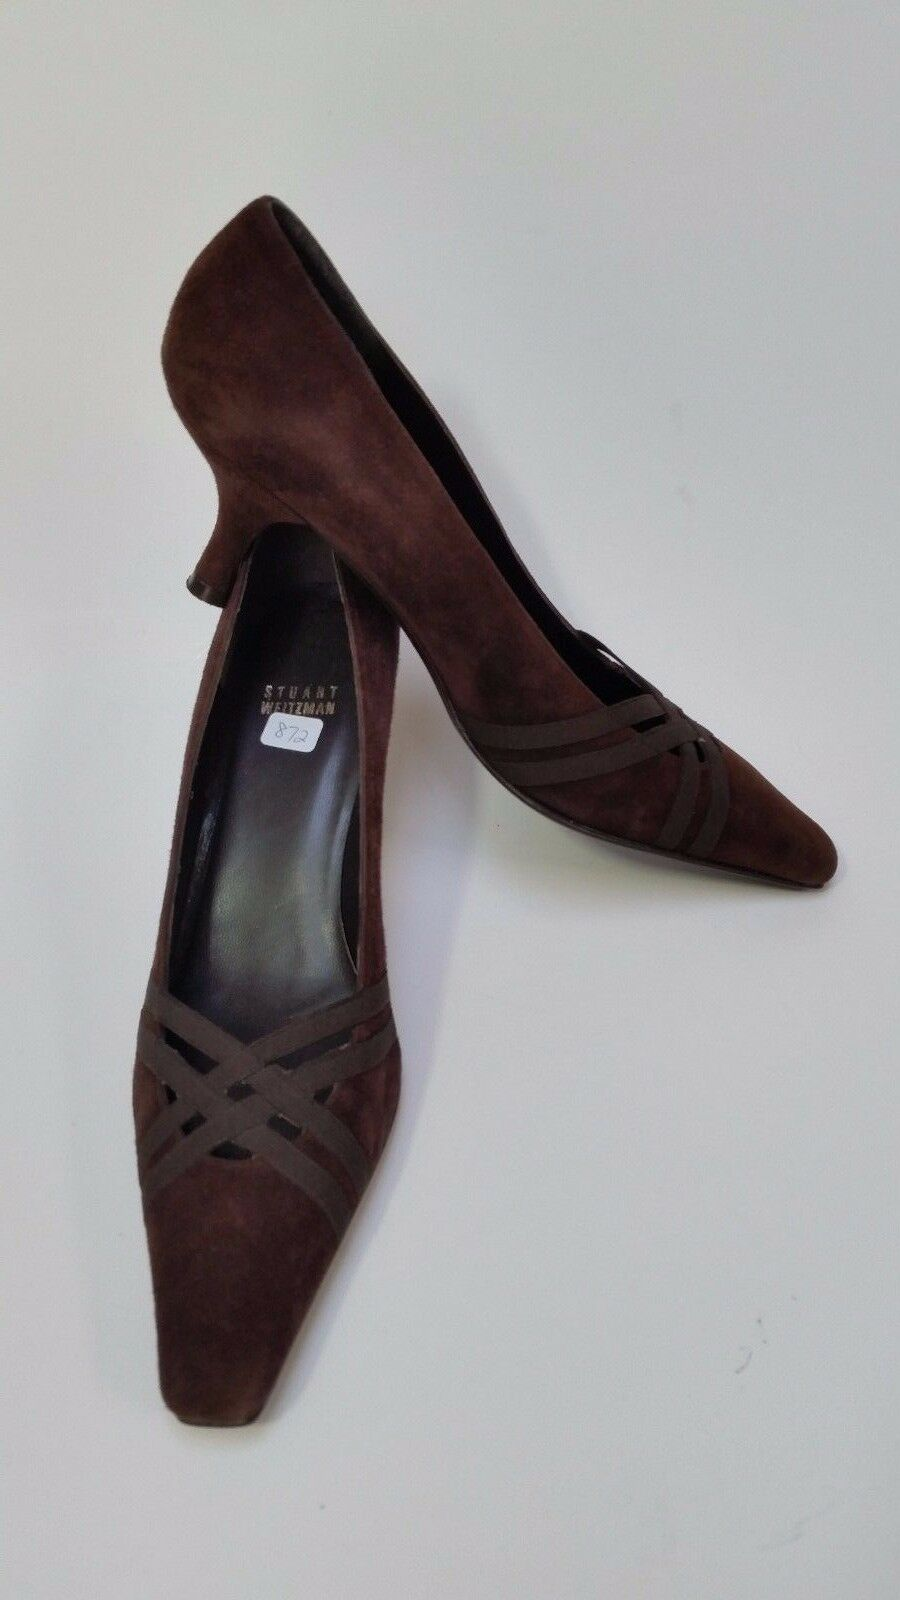 Stuart Weitzman shoes Heels Pumps Square Toe Low Heel Brown Womens Size 8 M